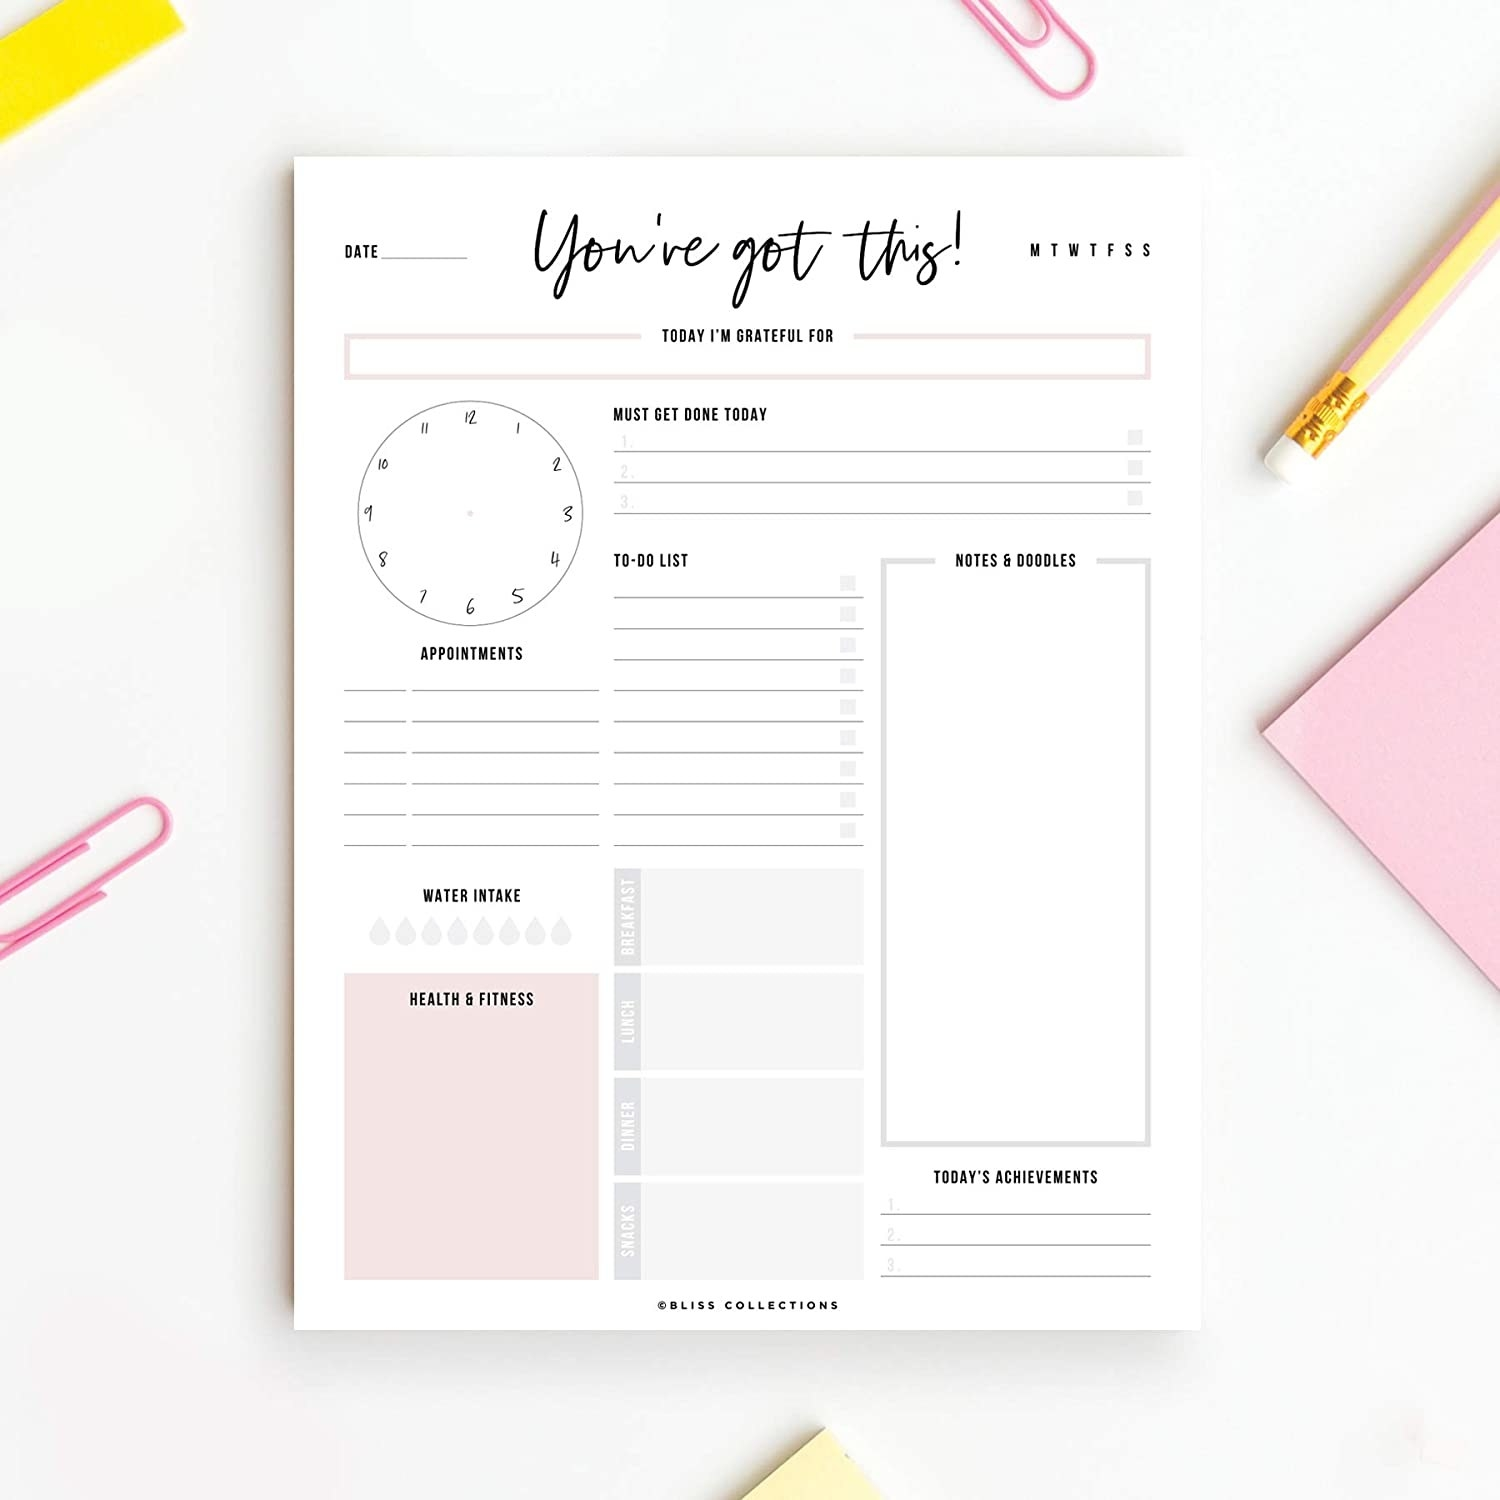 Ablank page of the planner